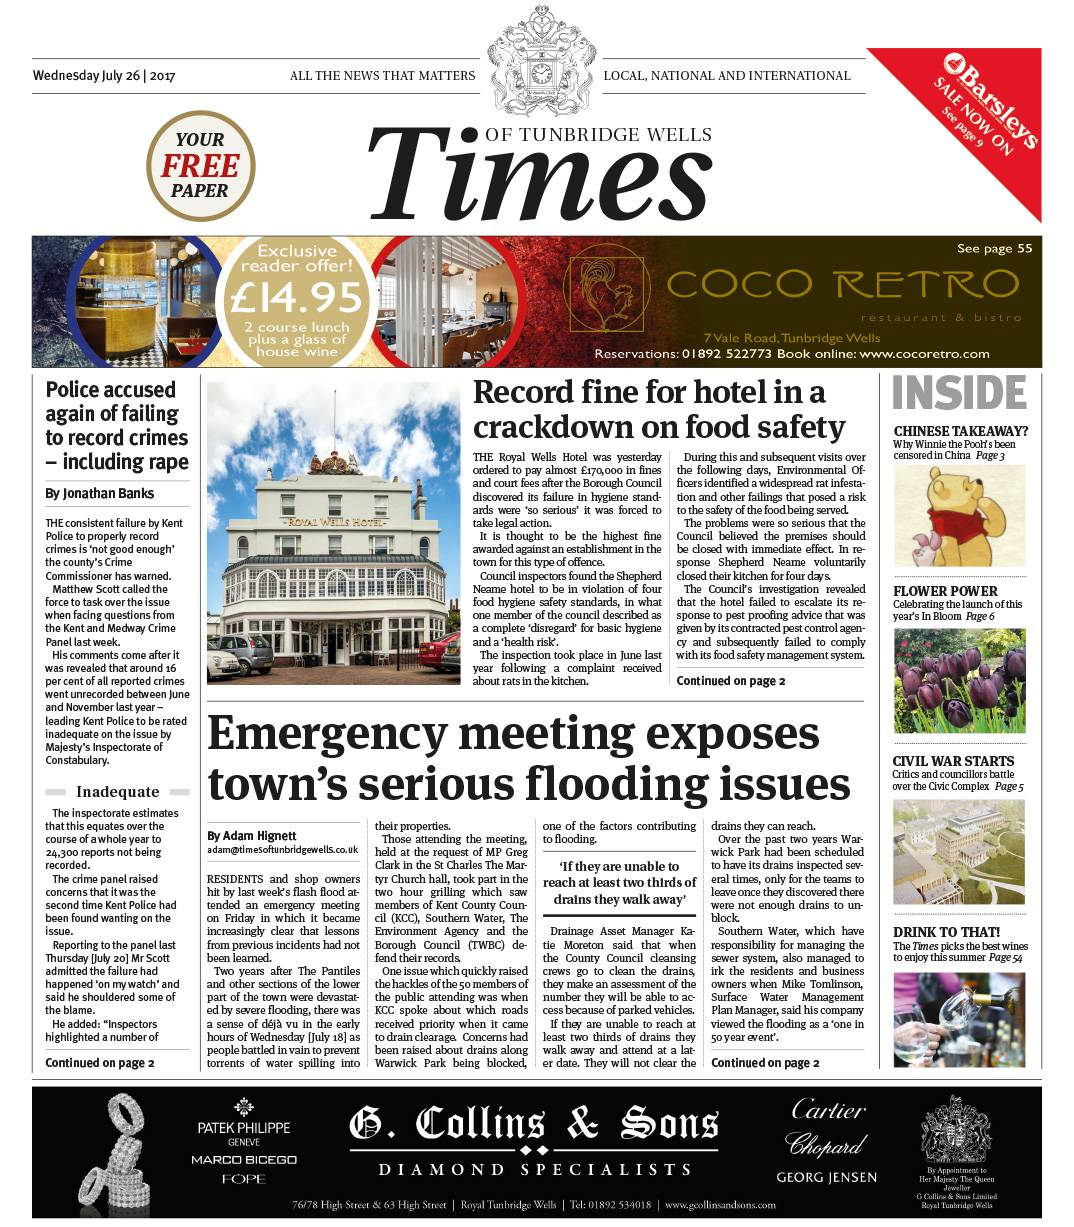 Read the Times of Tunbridge Wells 26th July 2017